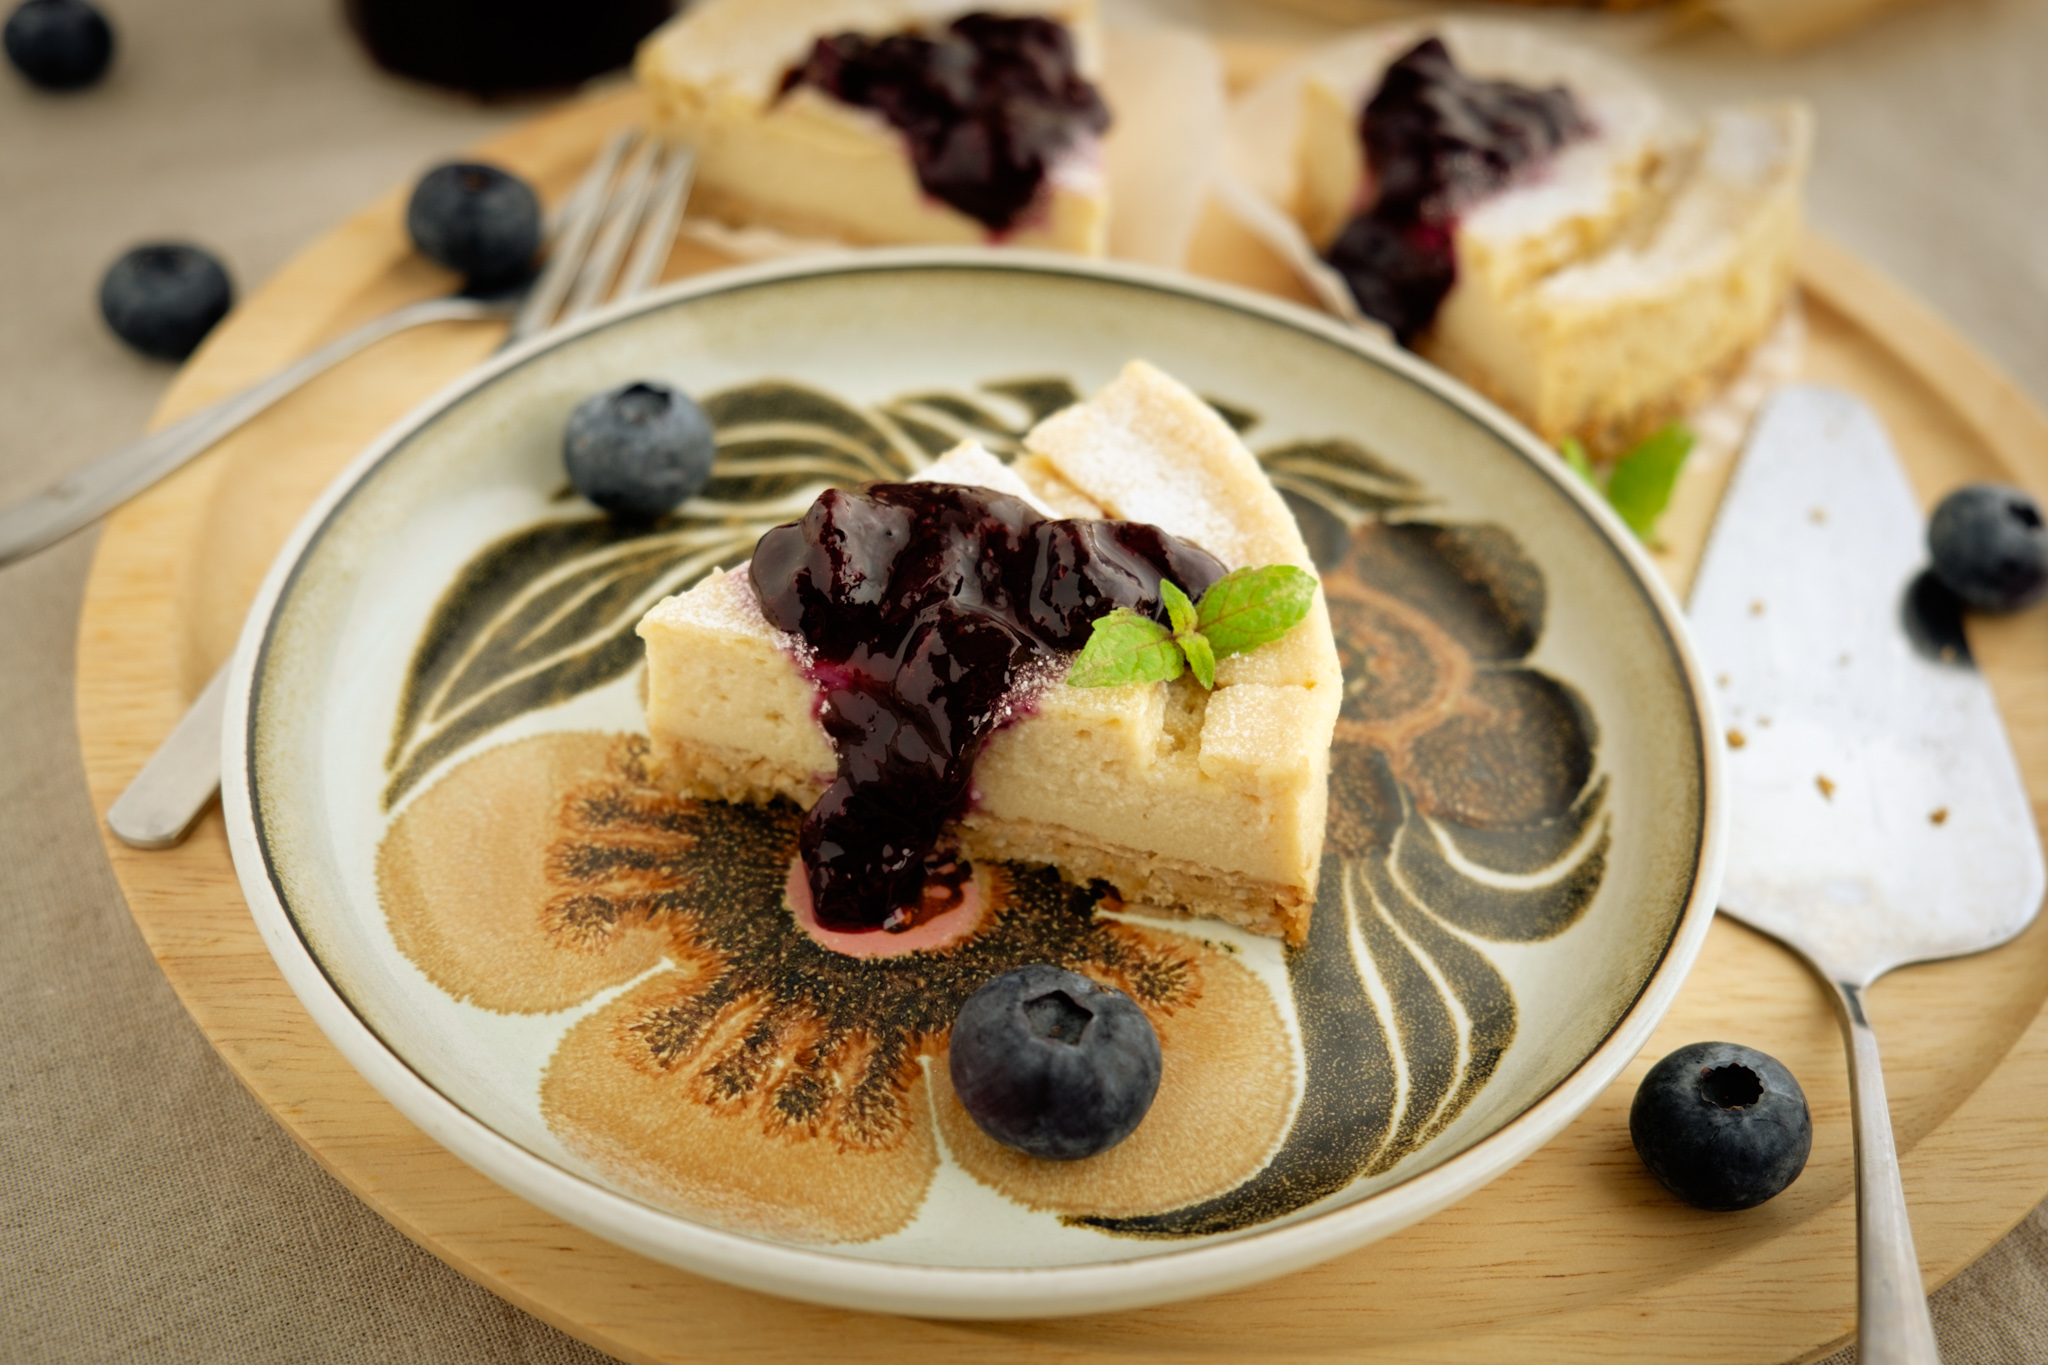 Collaboration with BIO Marche Vol.33 – 有機ブルーベリーのベイクドチーズケーキ Vegan and gluten free baked blueberry cheese cake